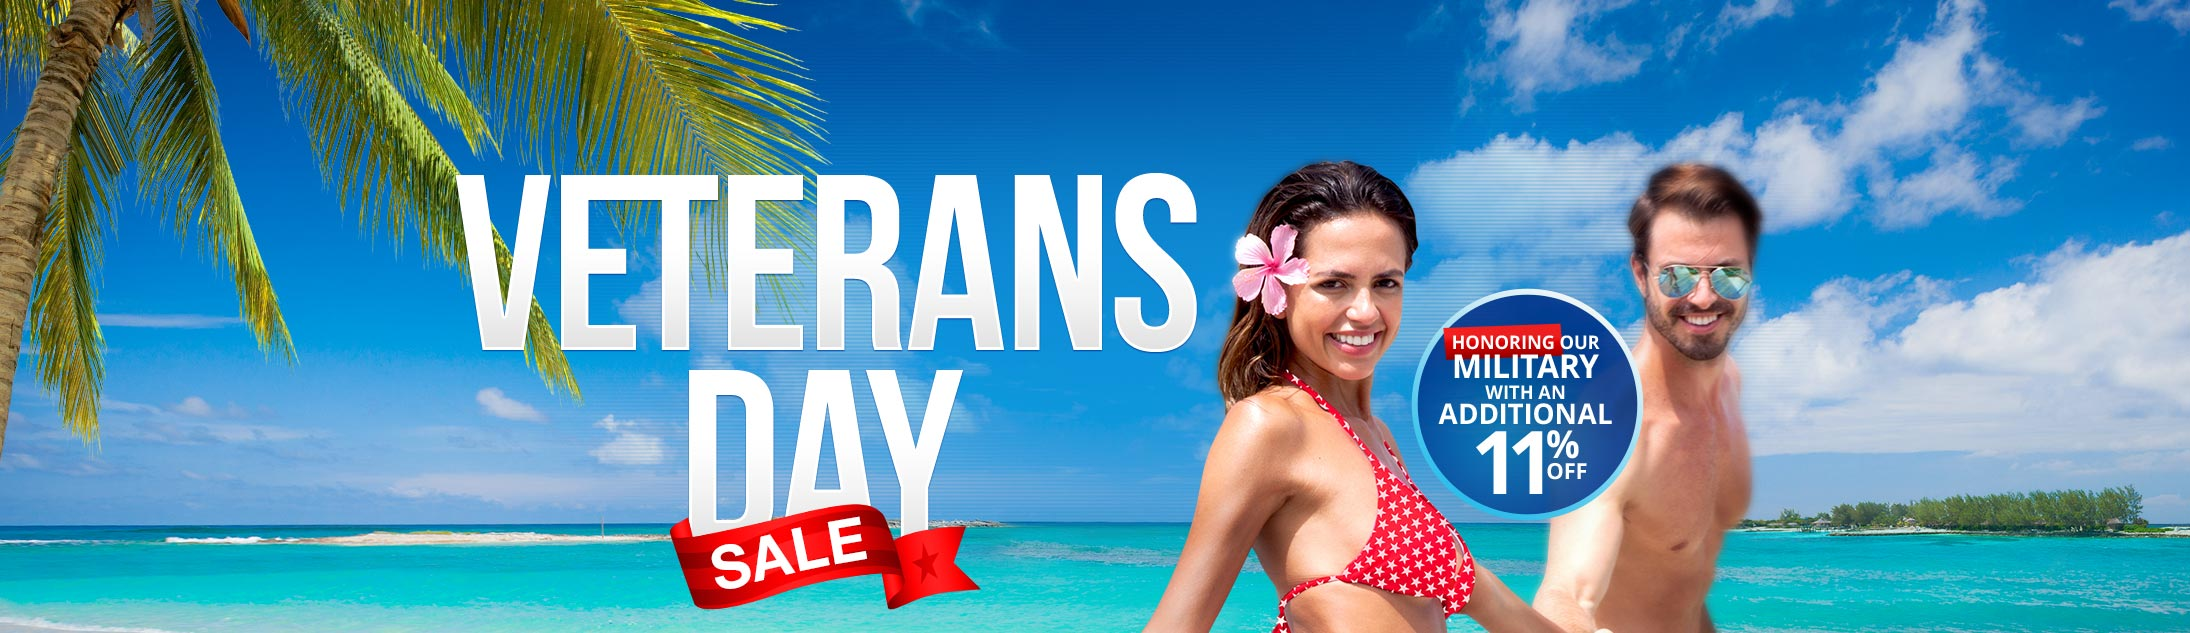 Veterans Day Sale - Enjoy Current Promotions: Get Up To $1000 Instant Booking Credit, Up To 65% Off Rack Rates, And Much More!